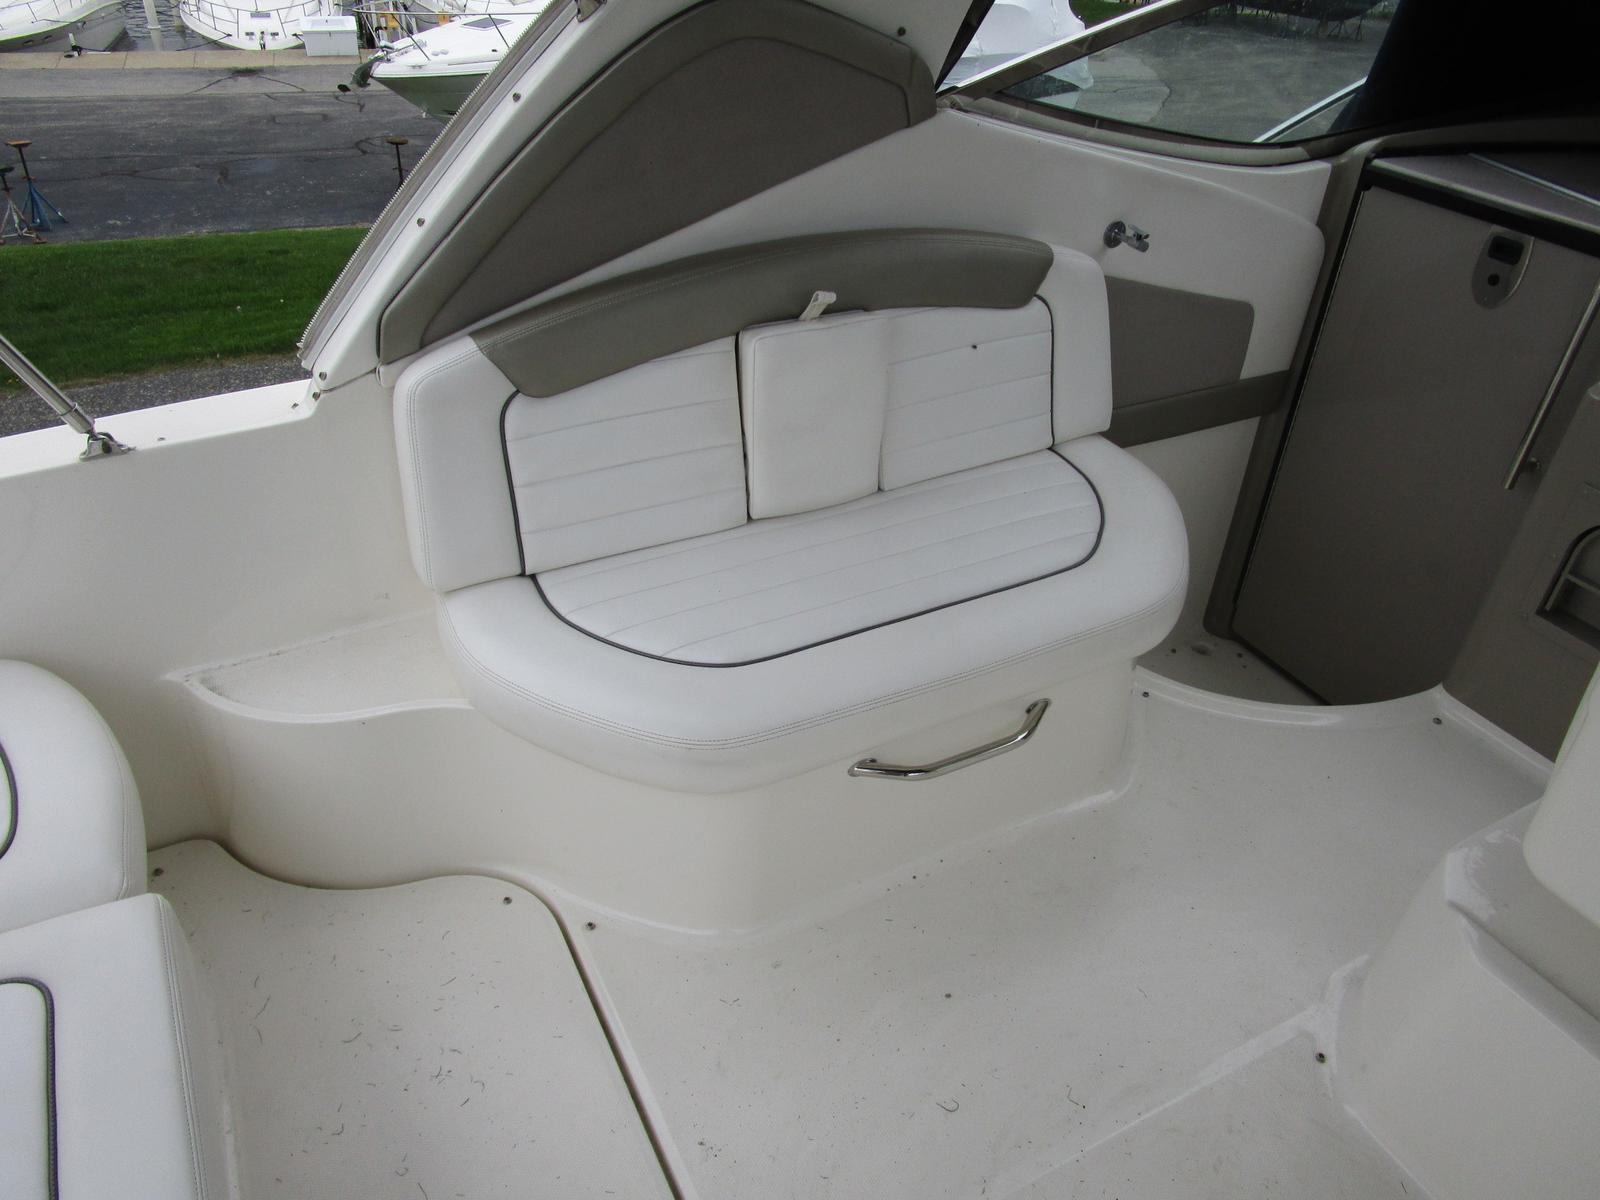 2007 Sea Ray boat for sale, model of the boat is 290 Sundancer & Image # 5 of 10